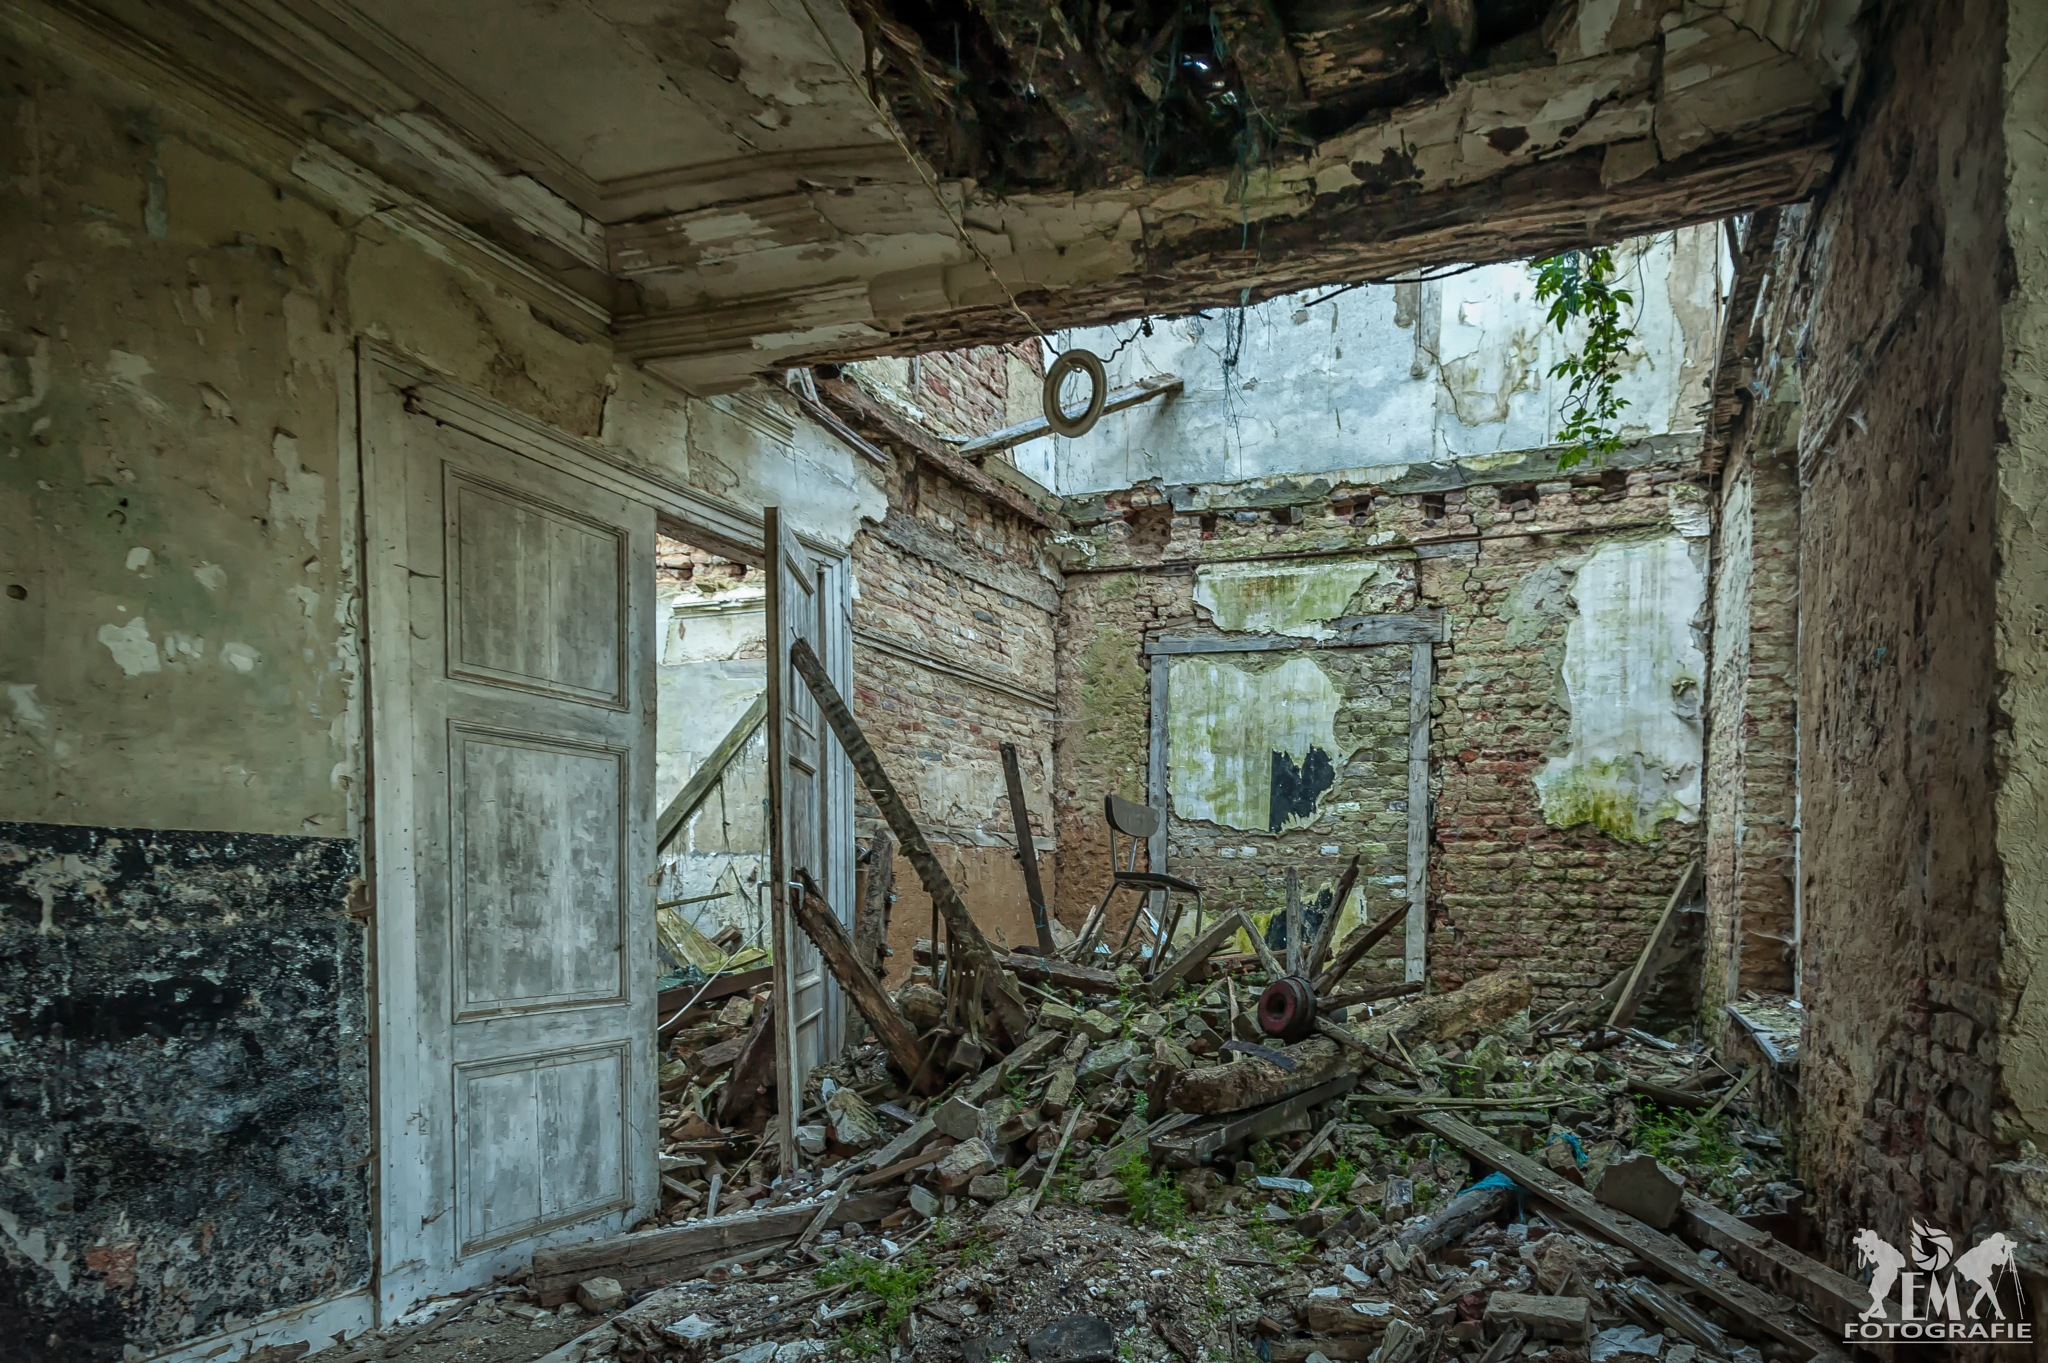 Where did the roof go by eleveldphotography